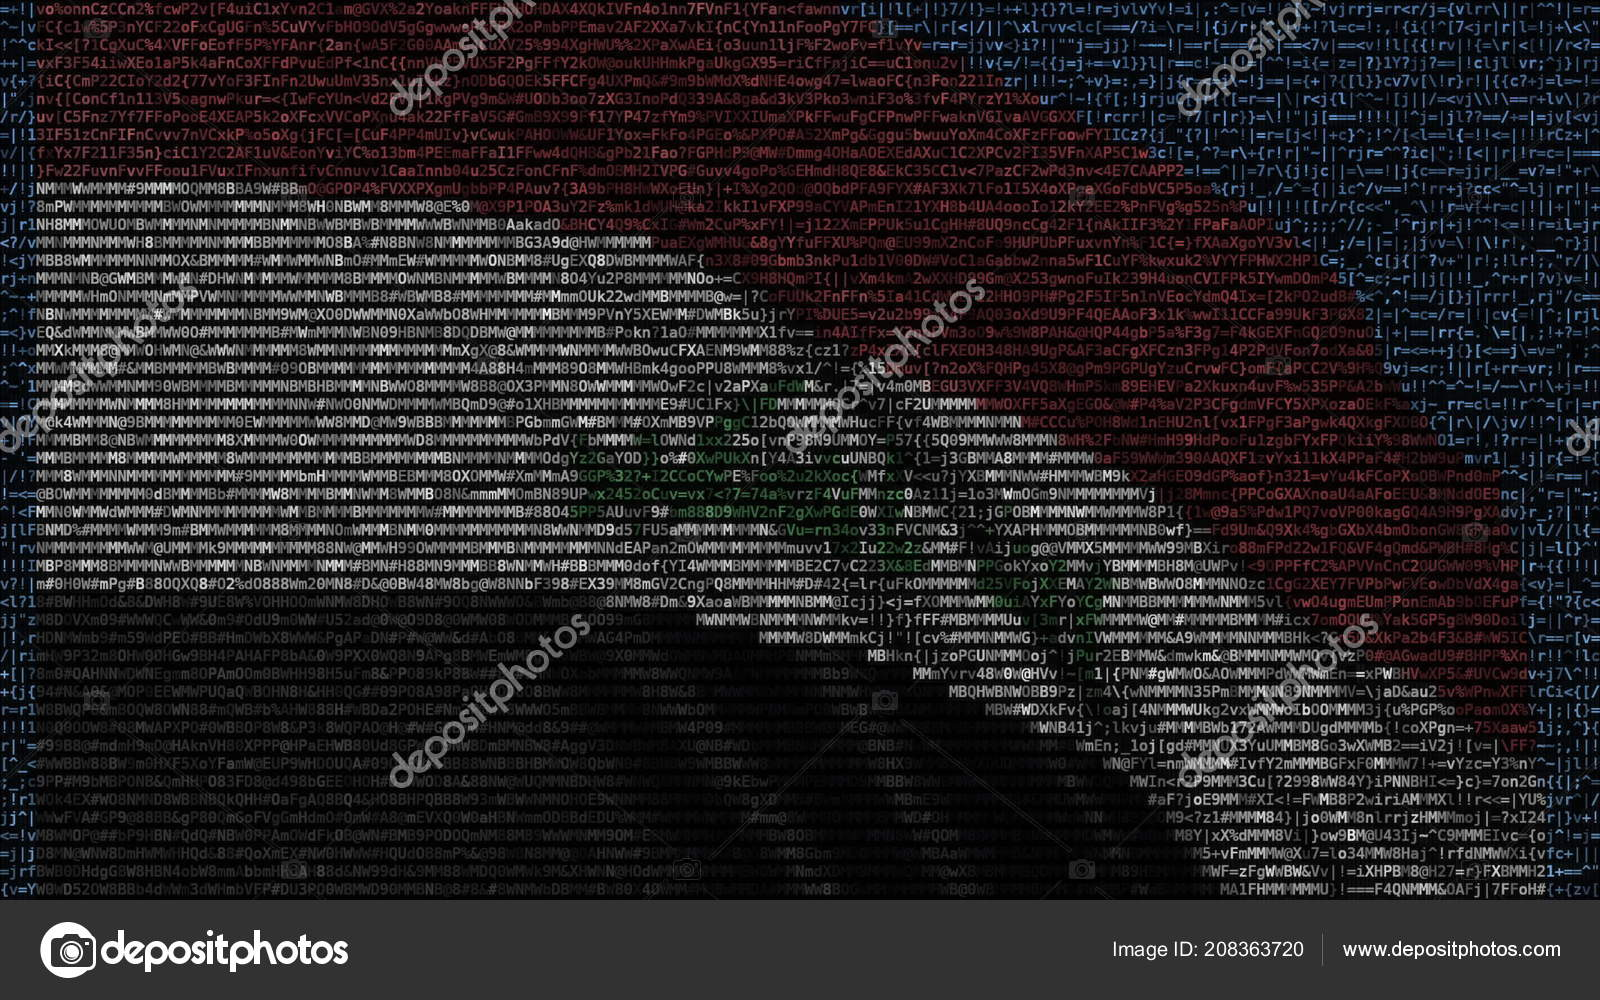 Waving Flag Of Iraq Made Of Text Symbols On A Computer Screen